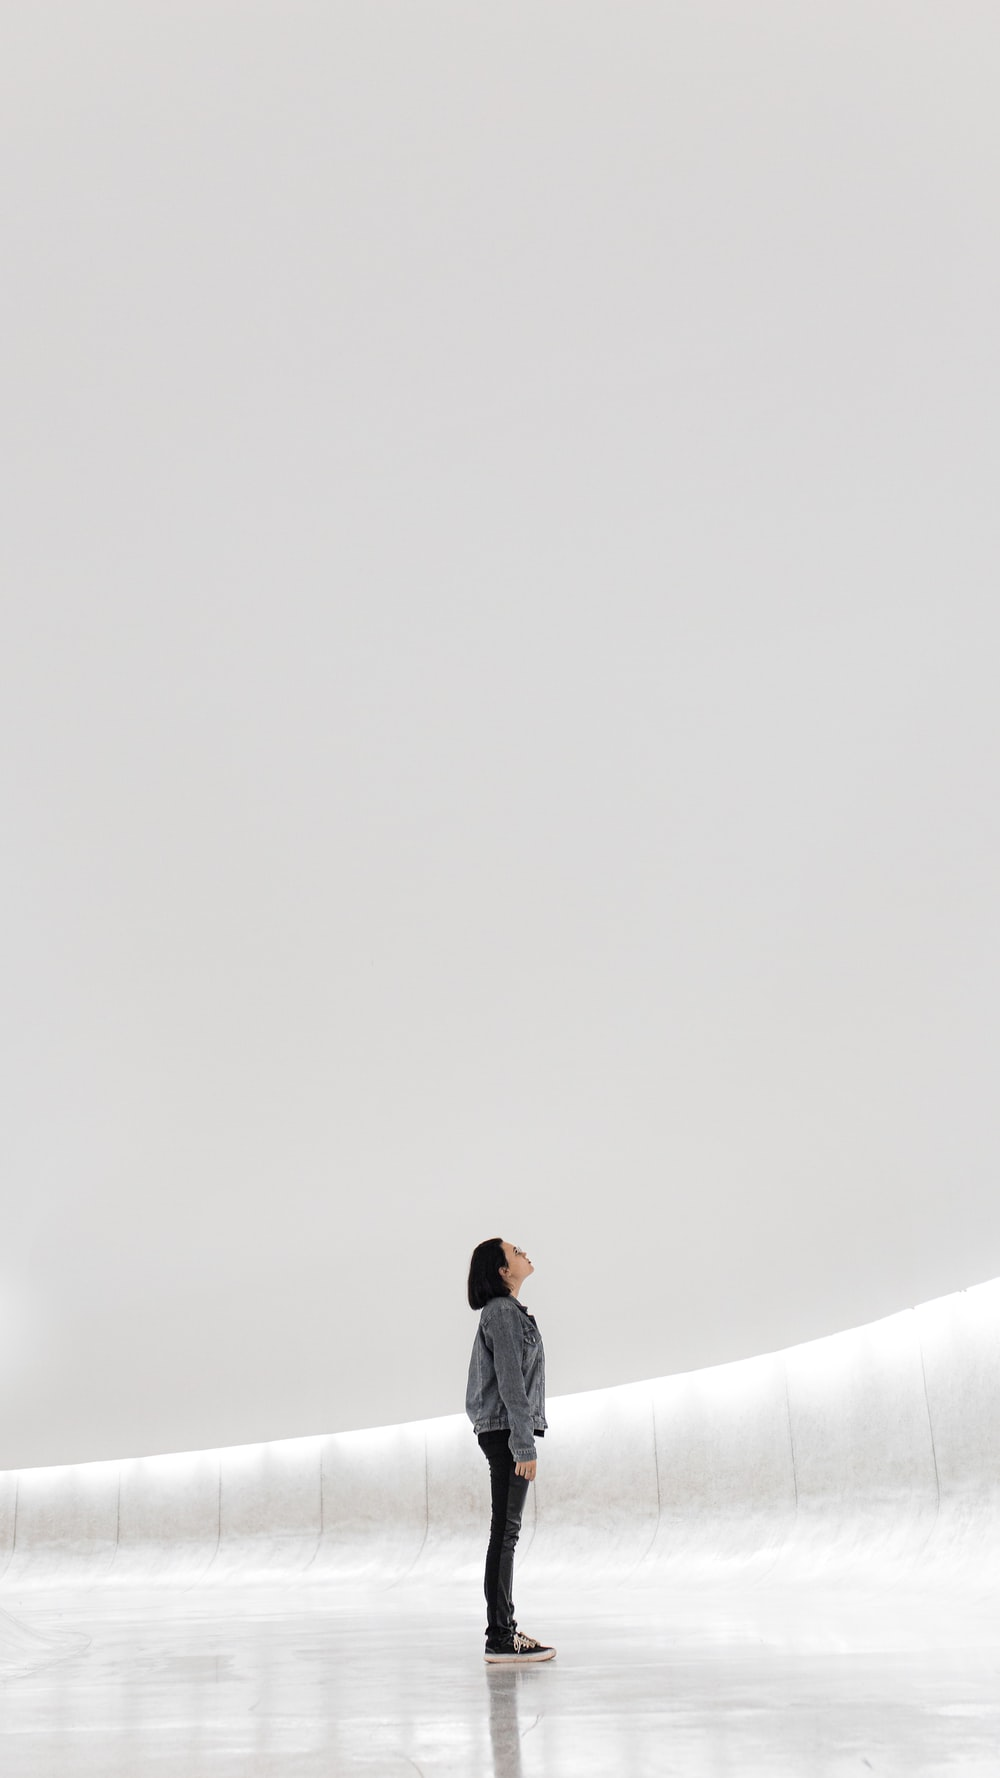 woman standing on ice